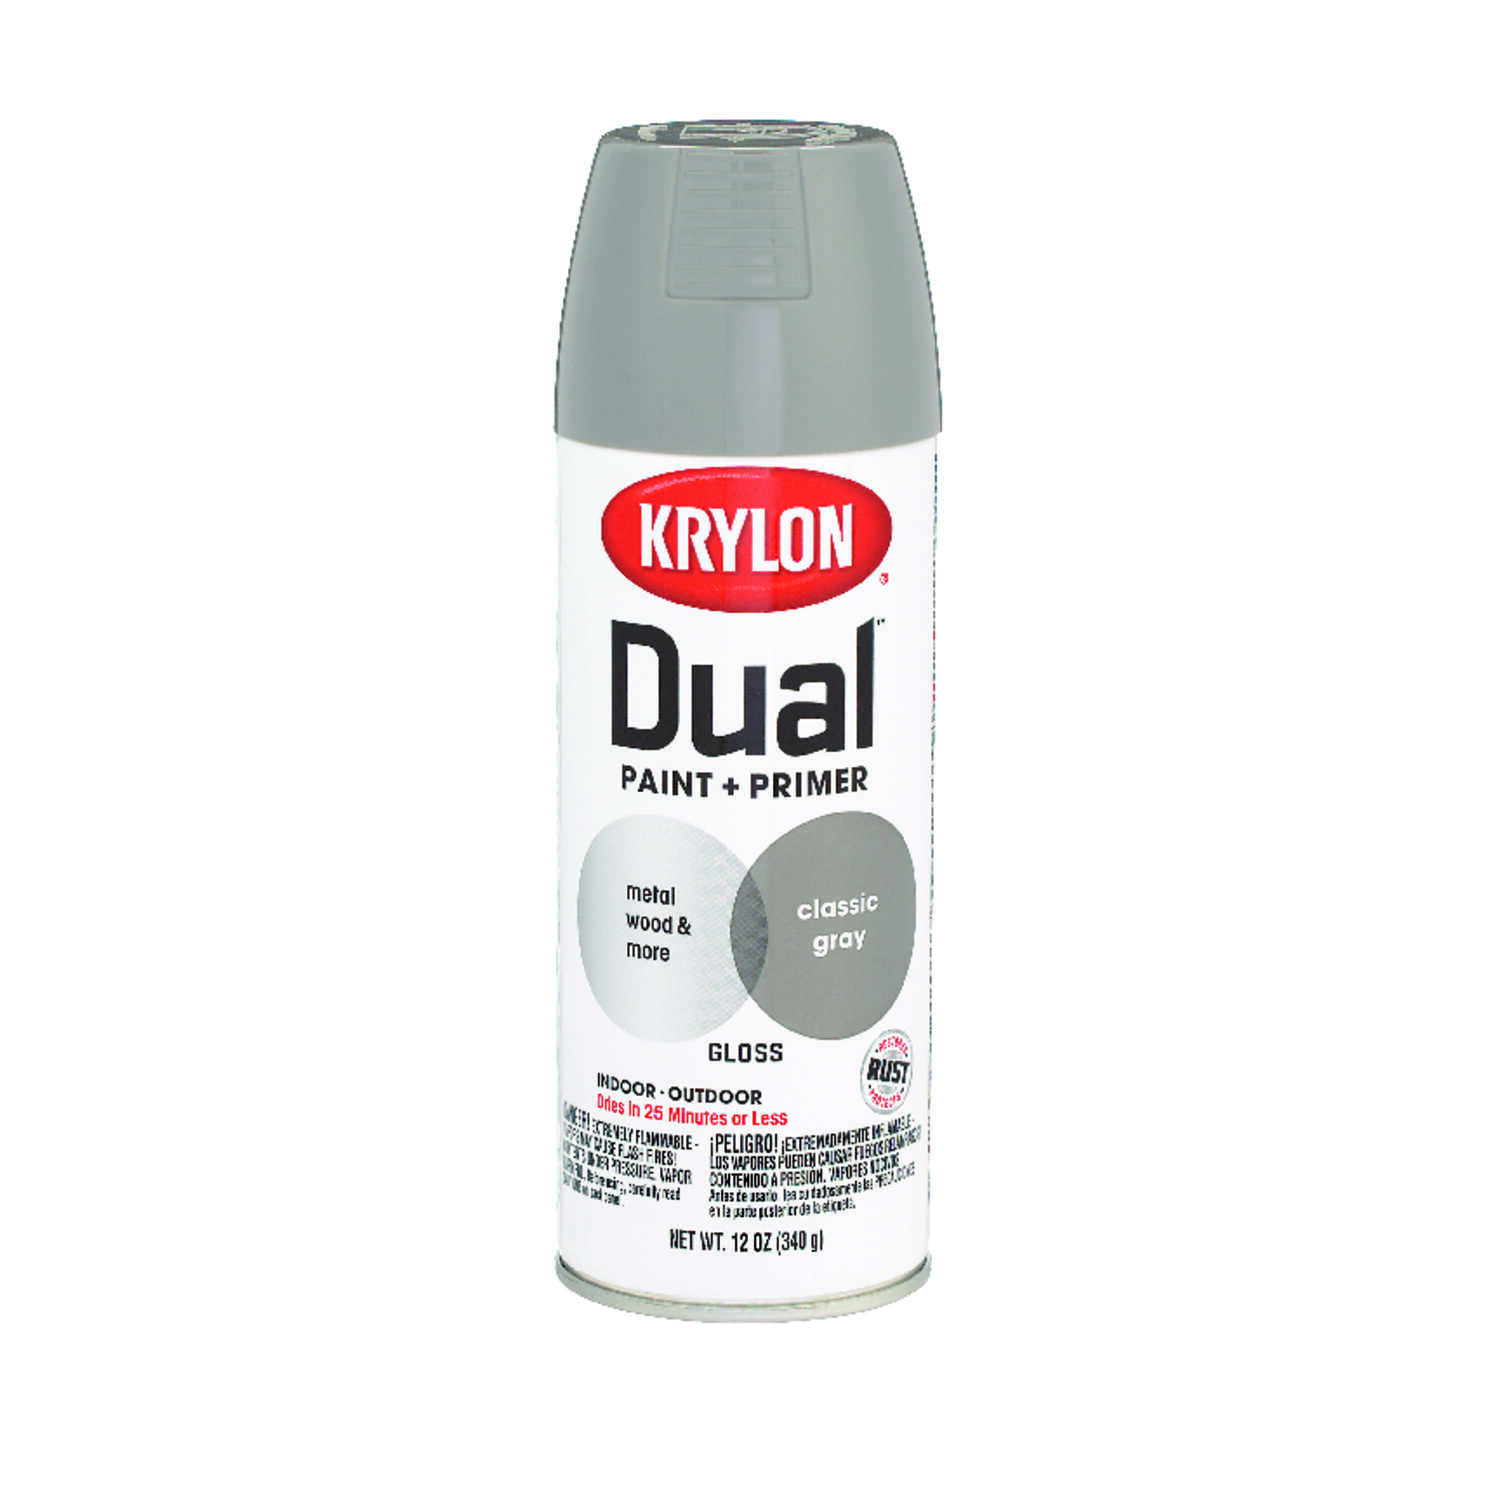 Krylon  Dual  Gloss  Classic Gray  Paint + Primer Spray Paint  12 oz.